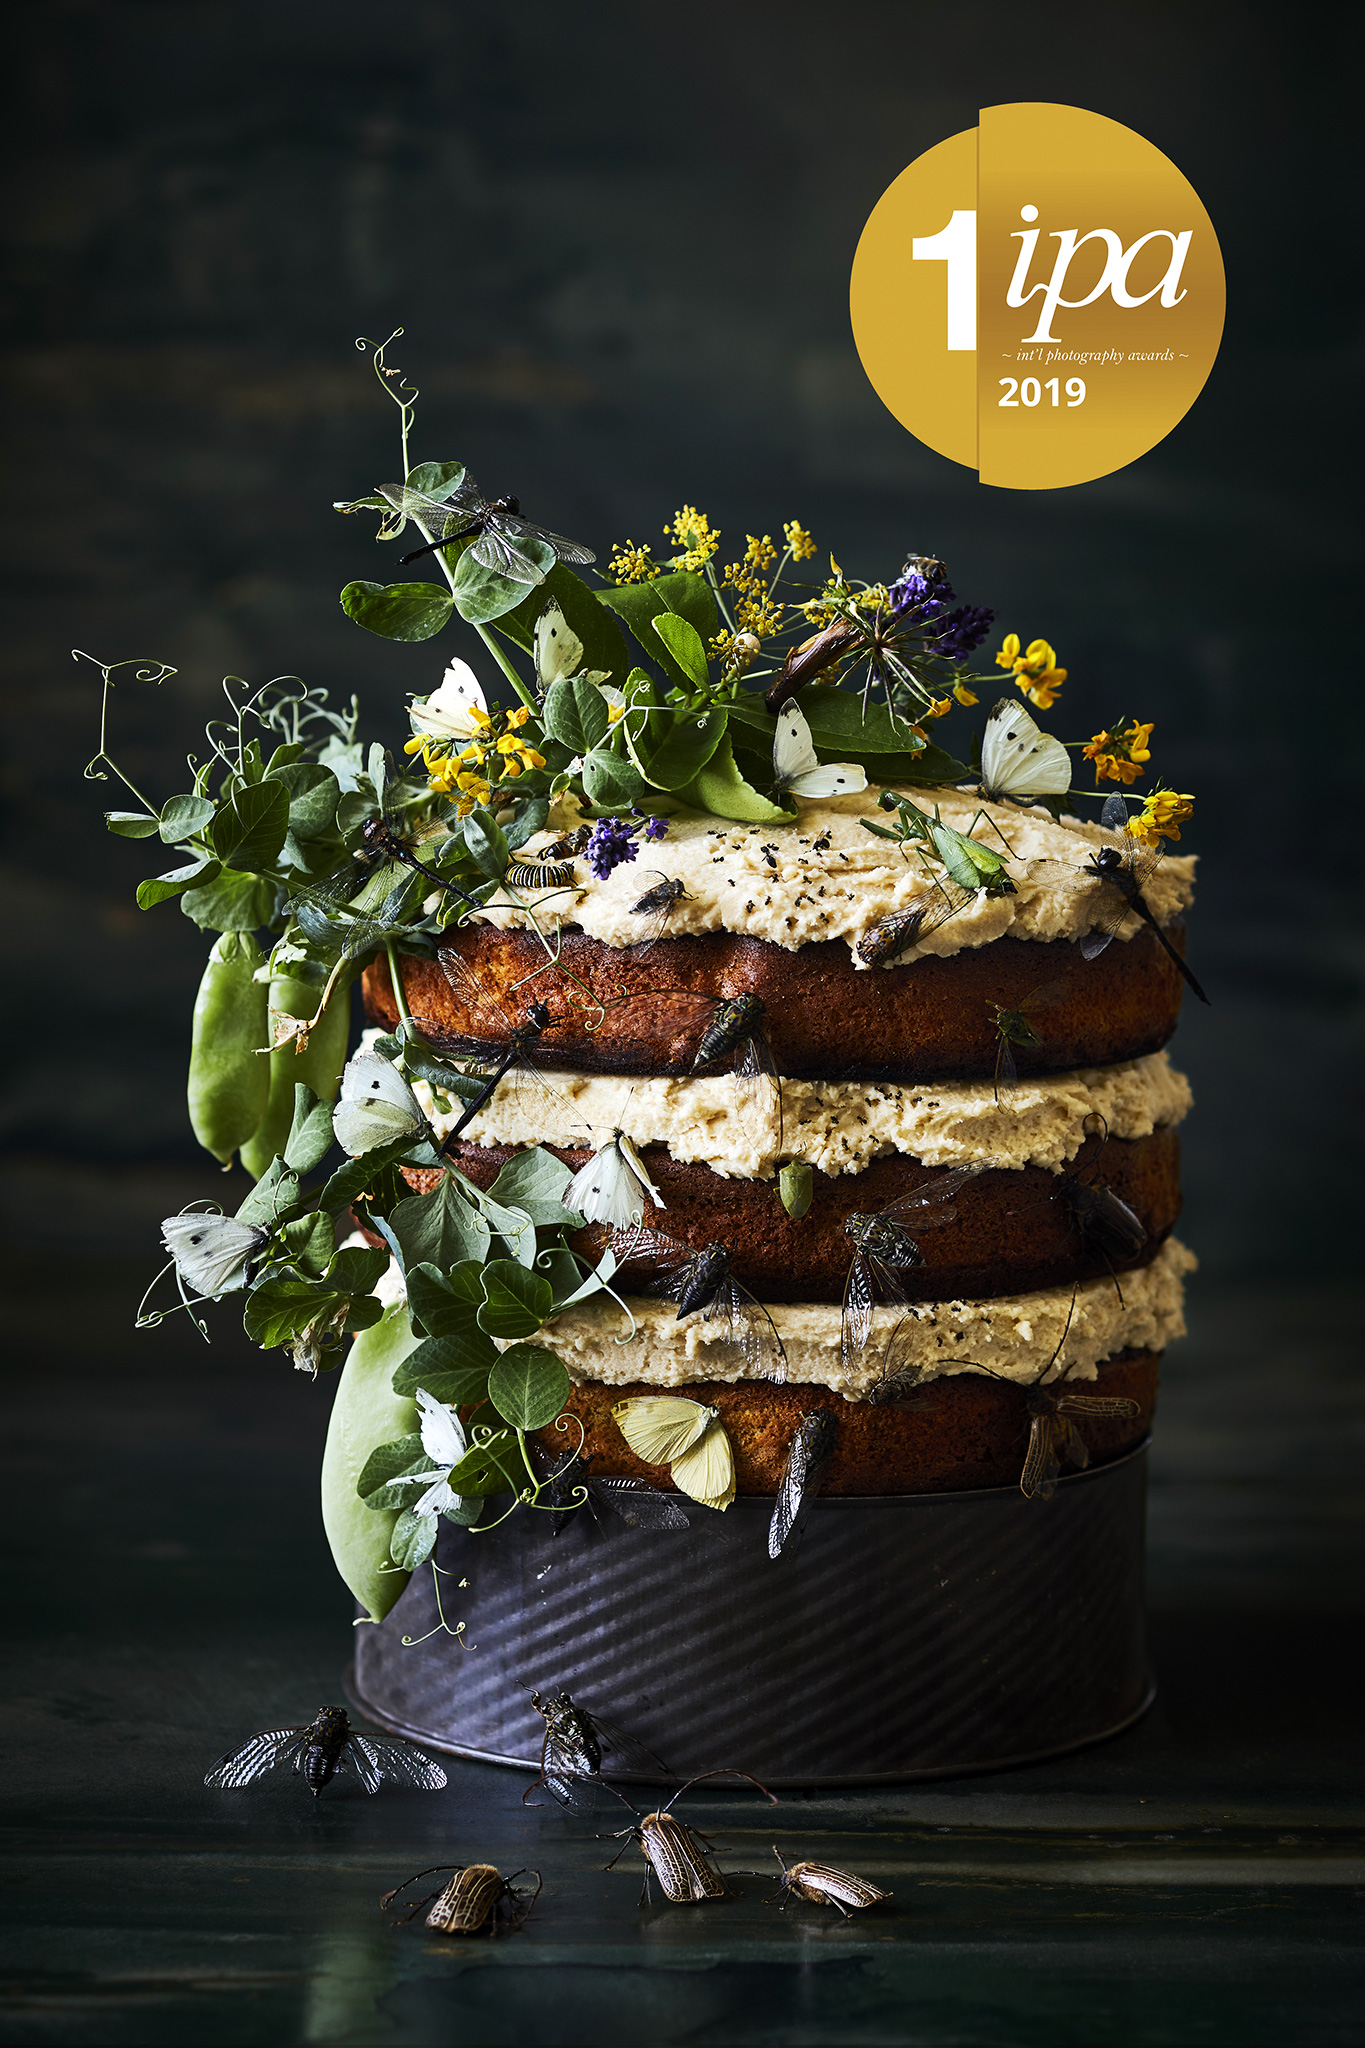 Insects a winner for top Kiwi food photographer Manja Wachsmuth